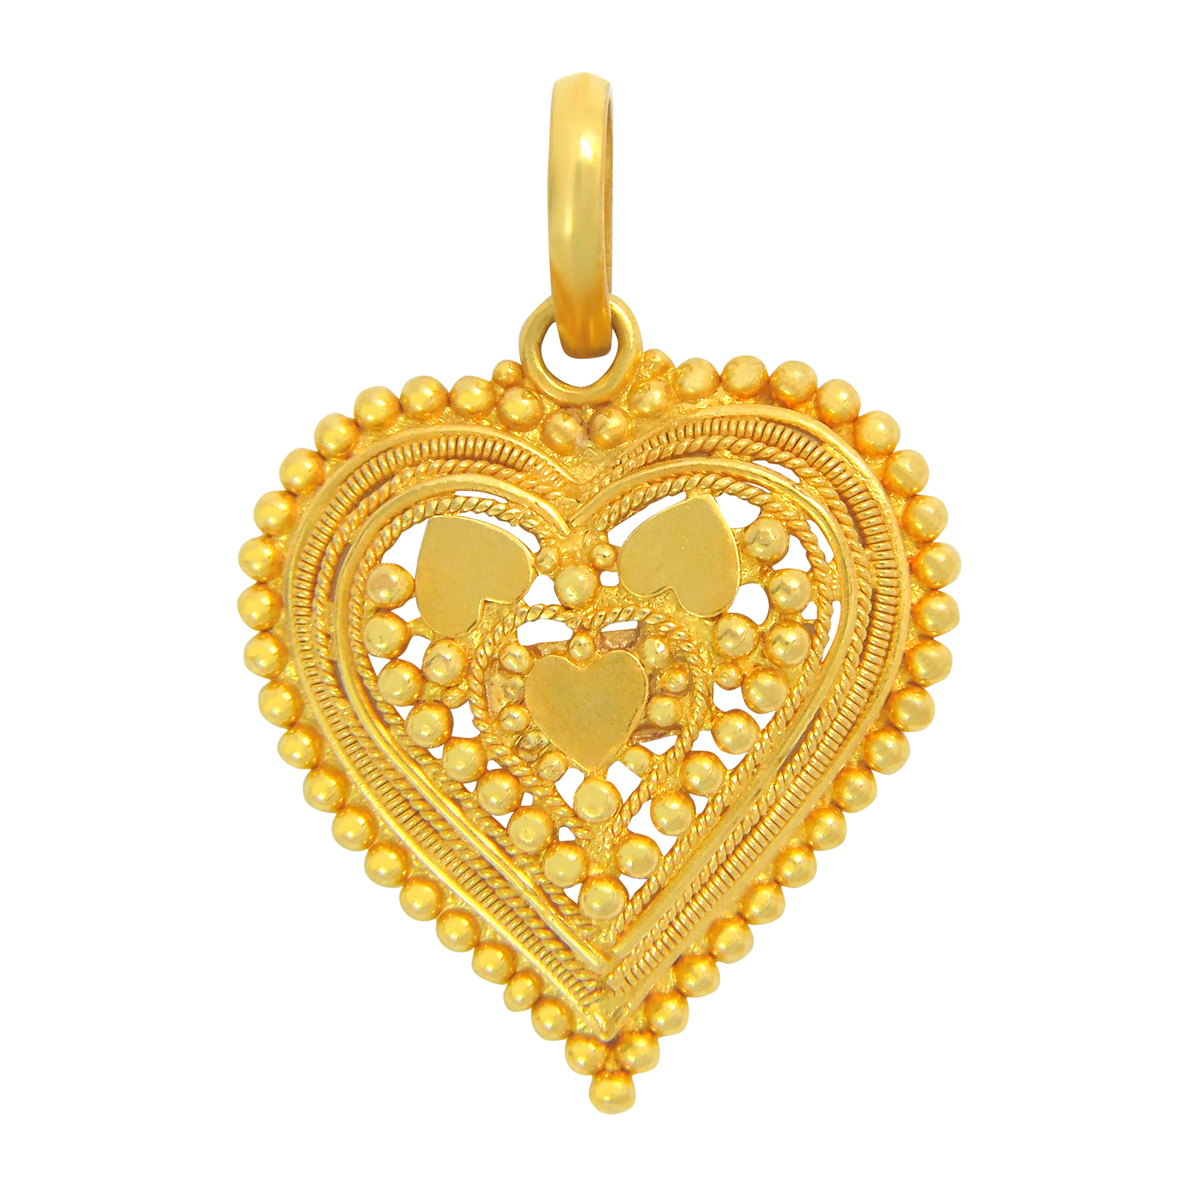 Popley 22Kt Gold Bandhan Pendant - A44